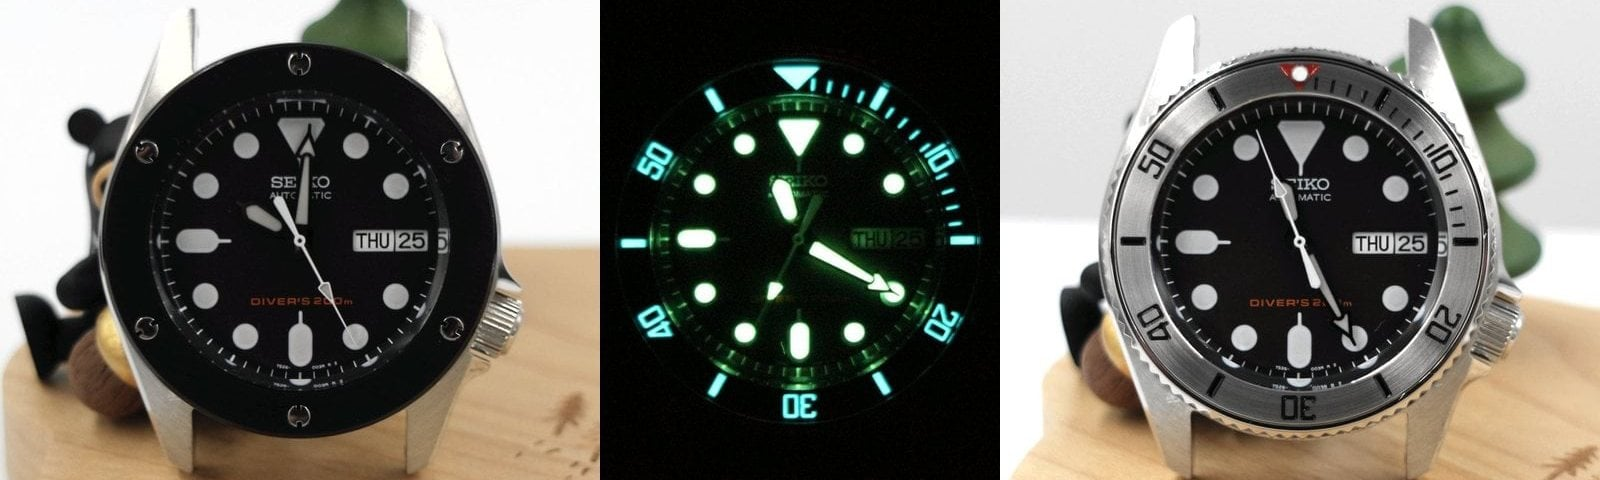 New SKX013 Mod Parts and more!